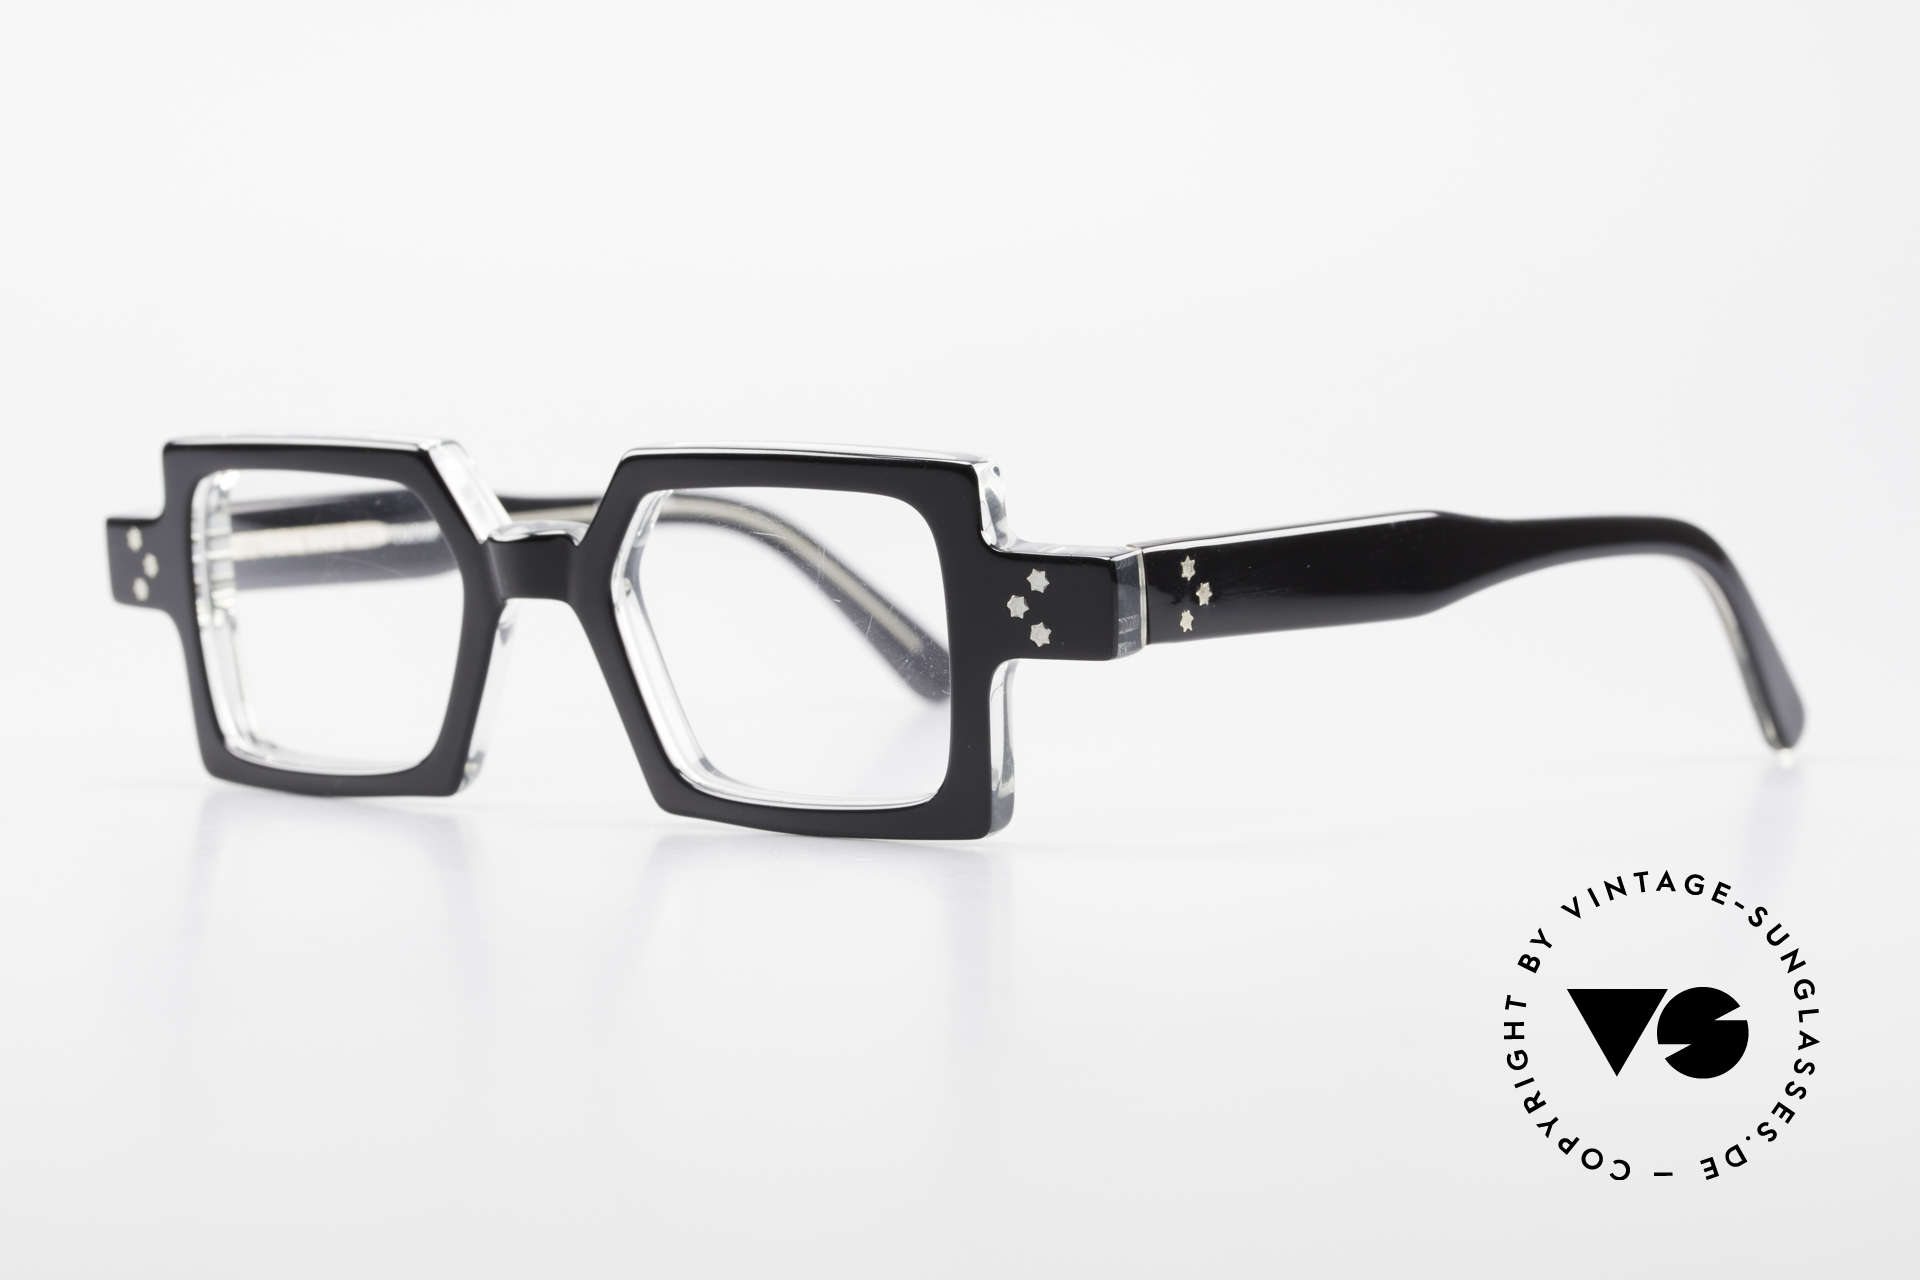 Anne Et Valentin Chico Square Old 80's Eyeglasses, spent their lives creating their own collection, Made for Men and Women